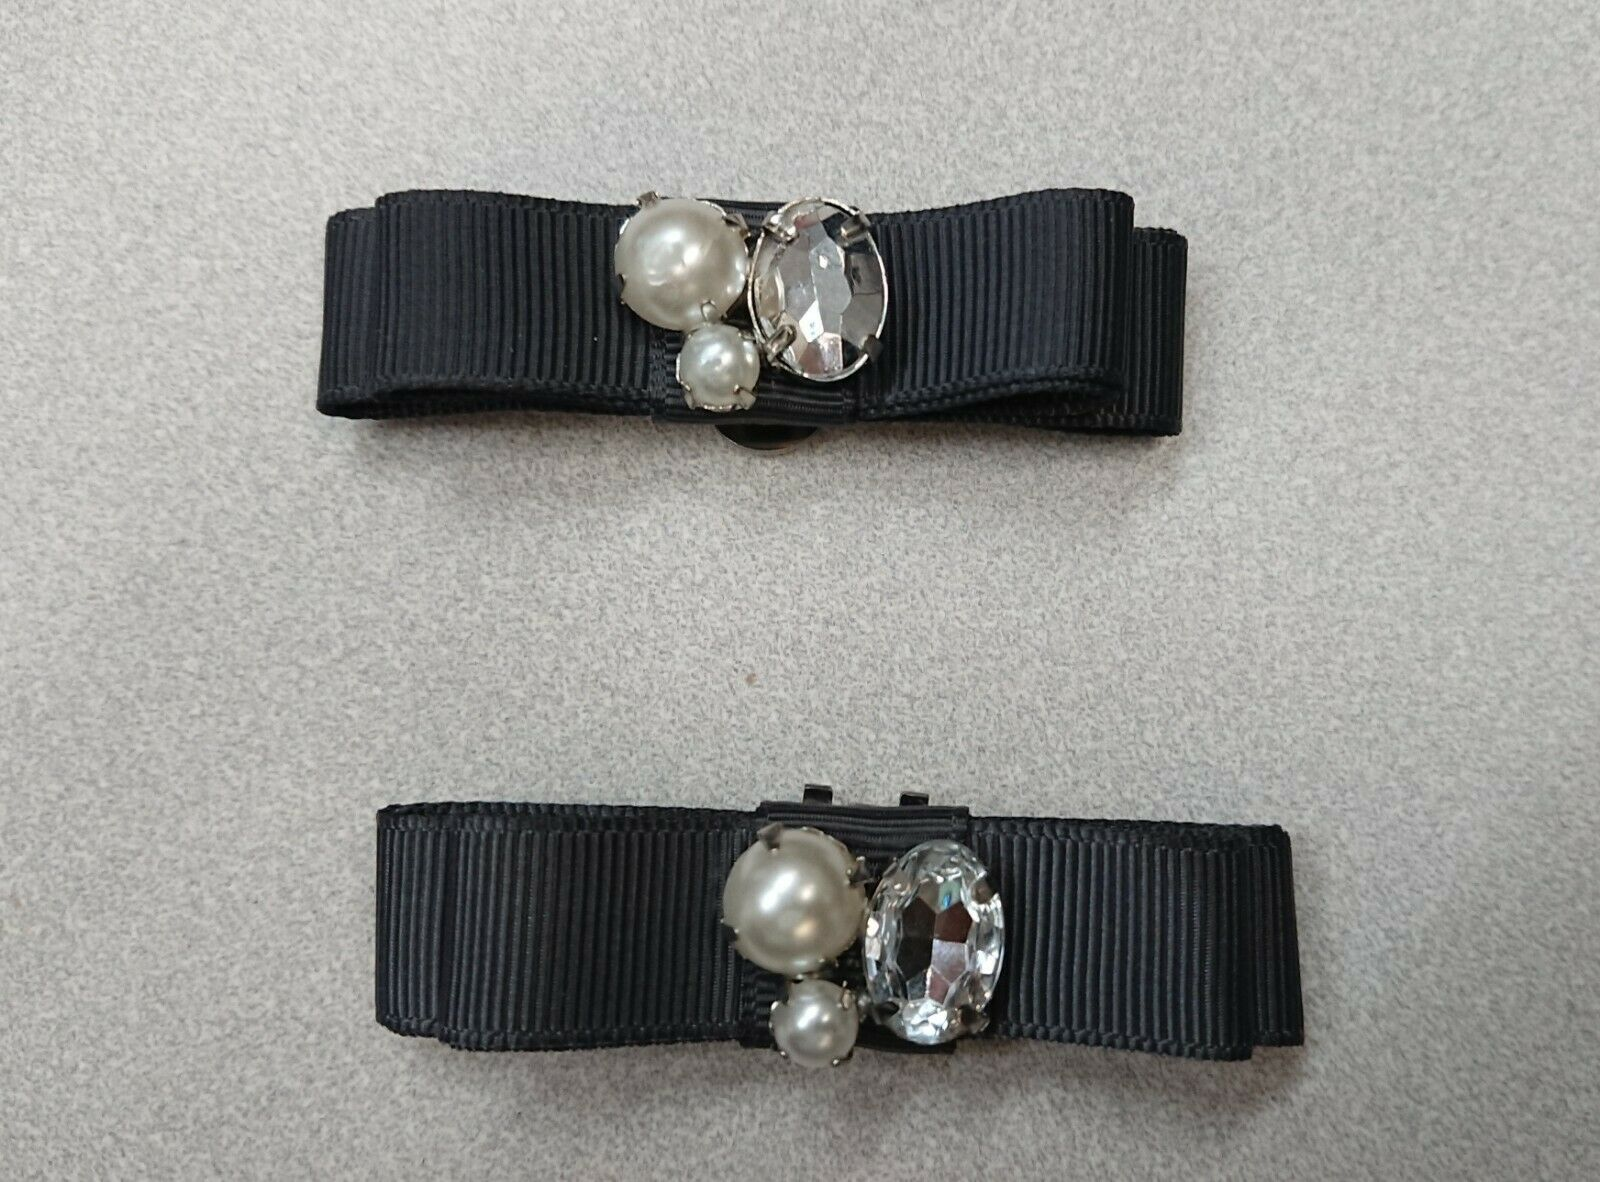 Shoe/Bag Buckles with gems (snap ons)